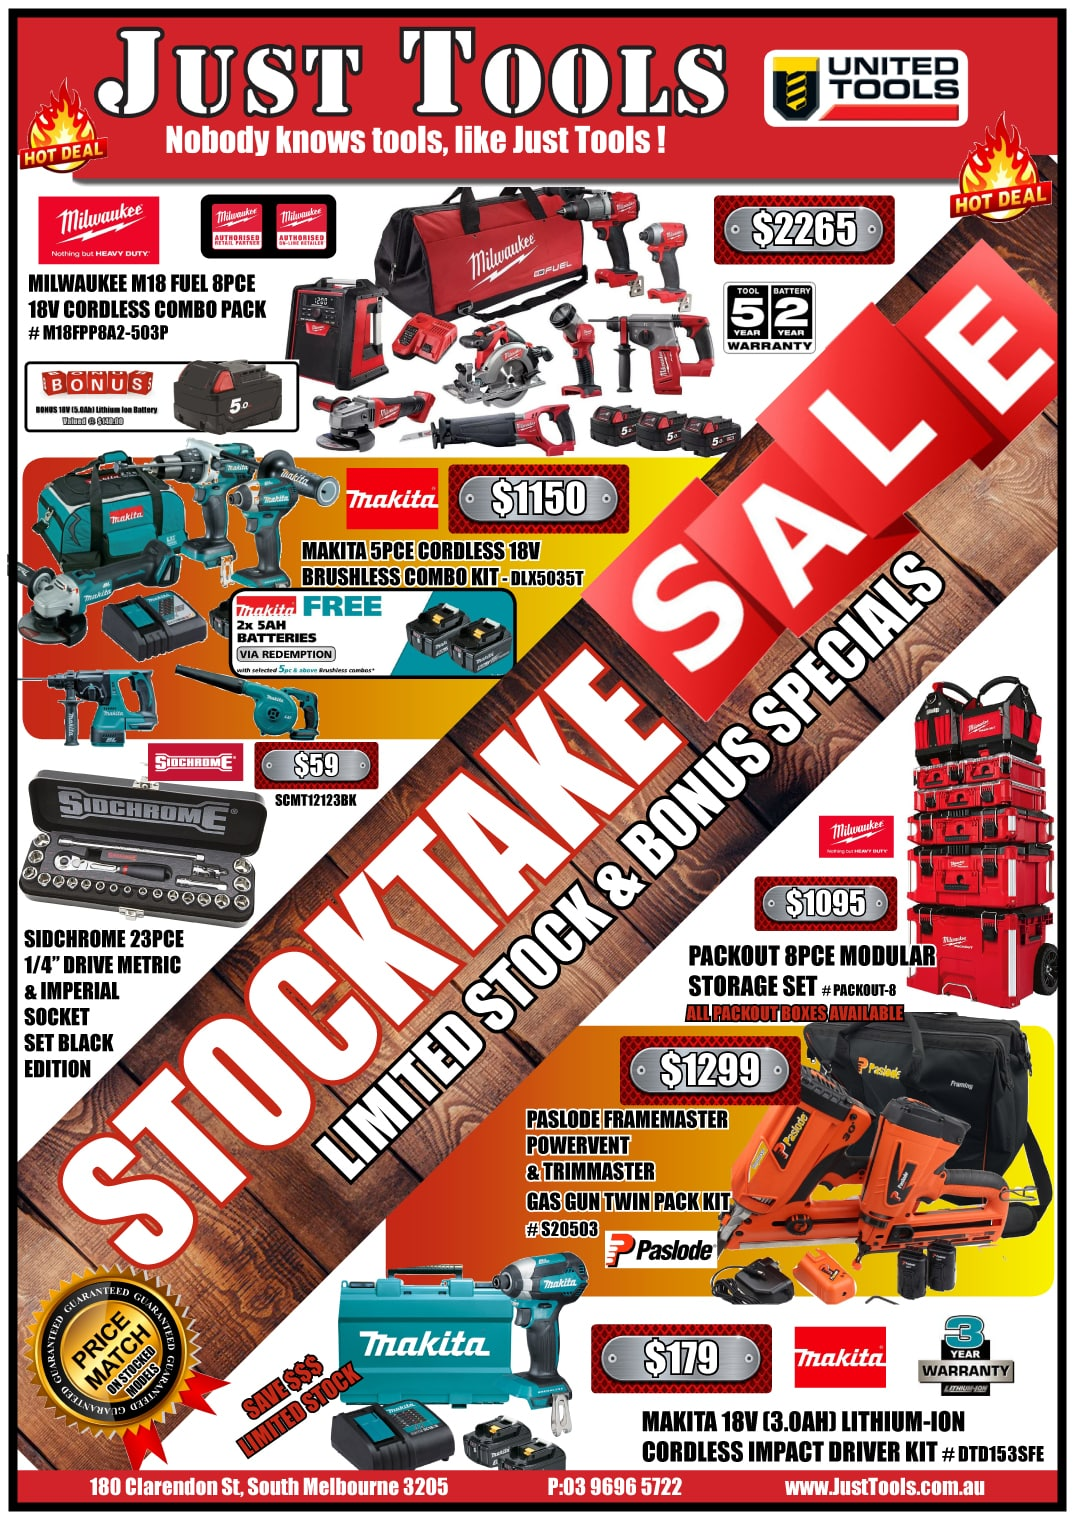 just-tools-stocktake-sale-page1a-min.jpg